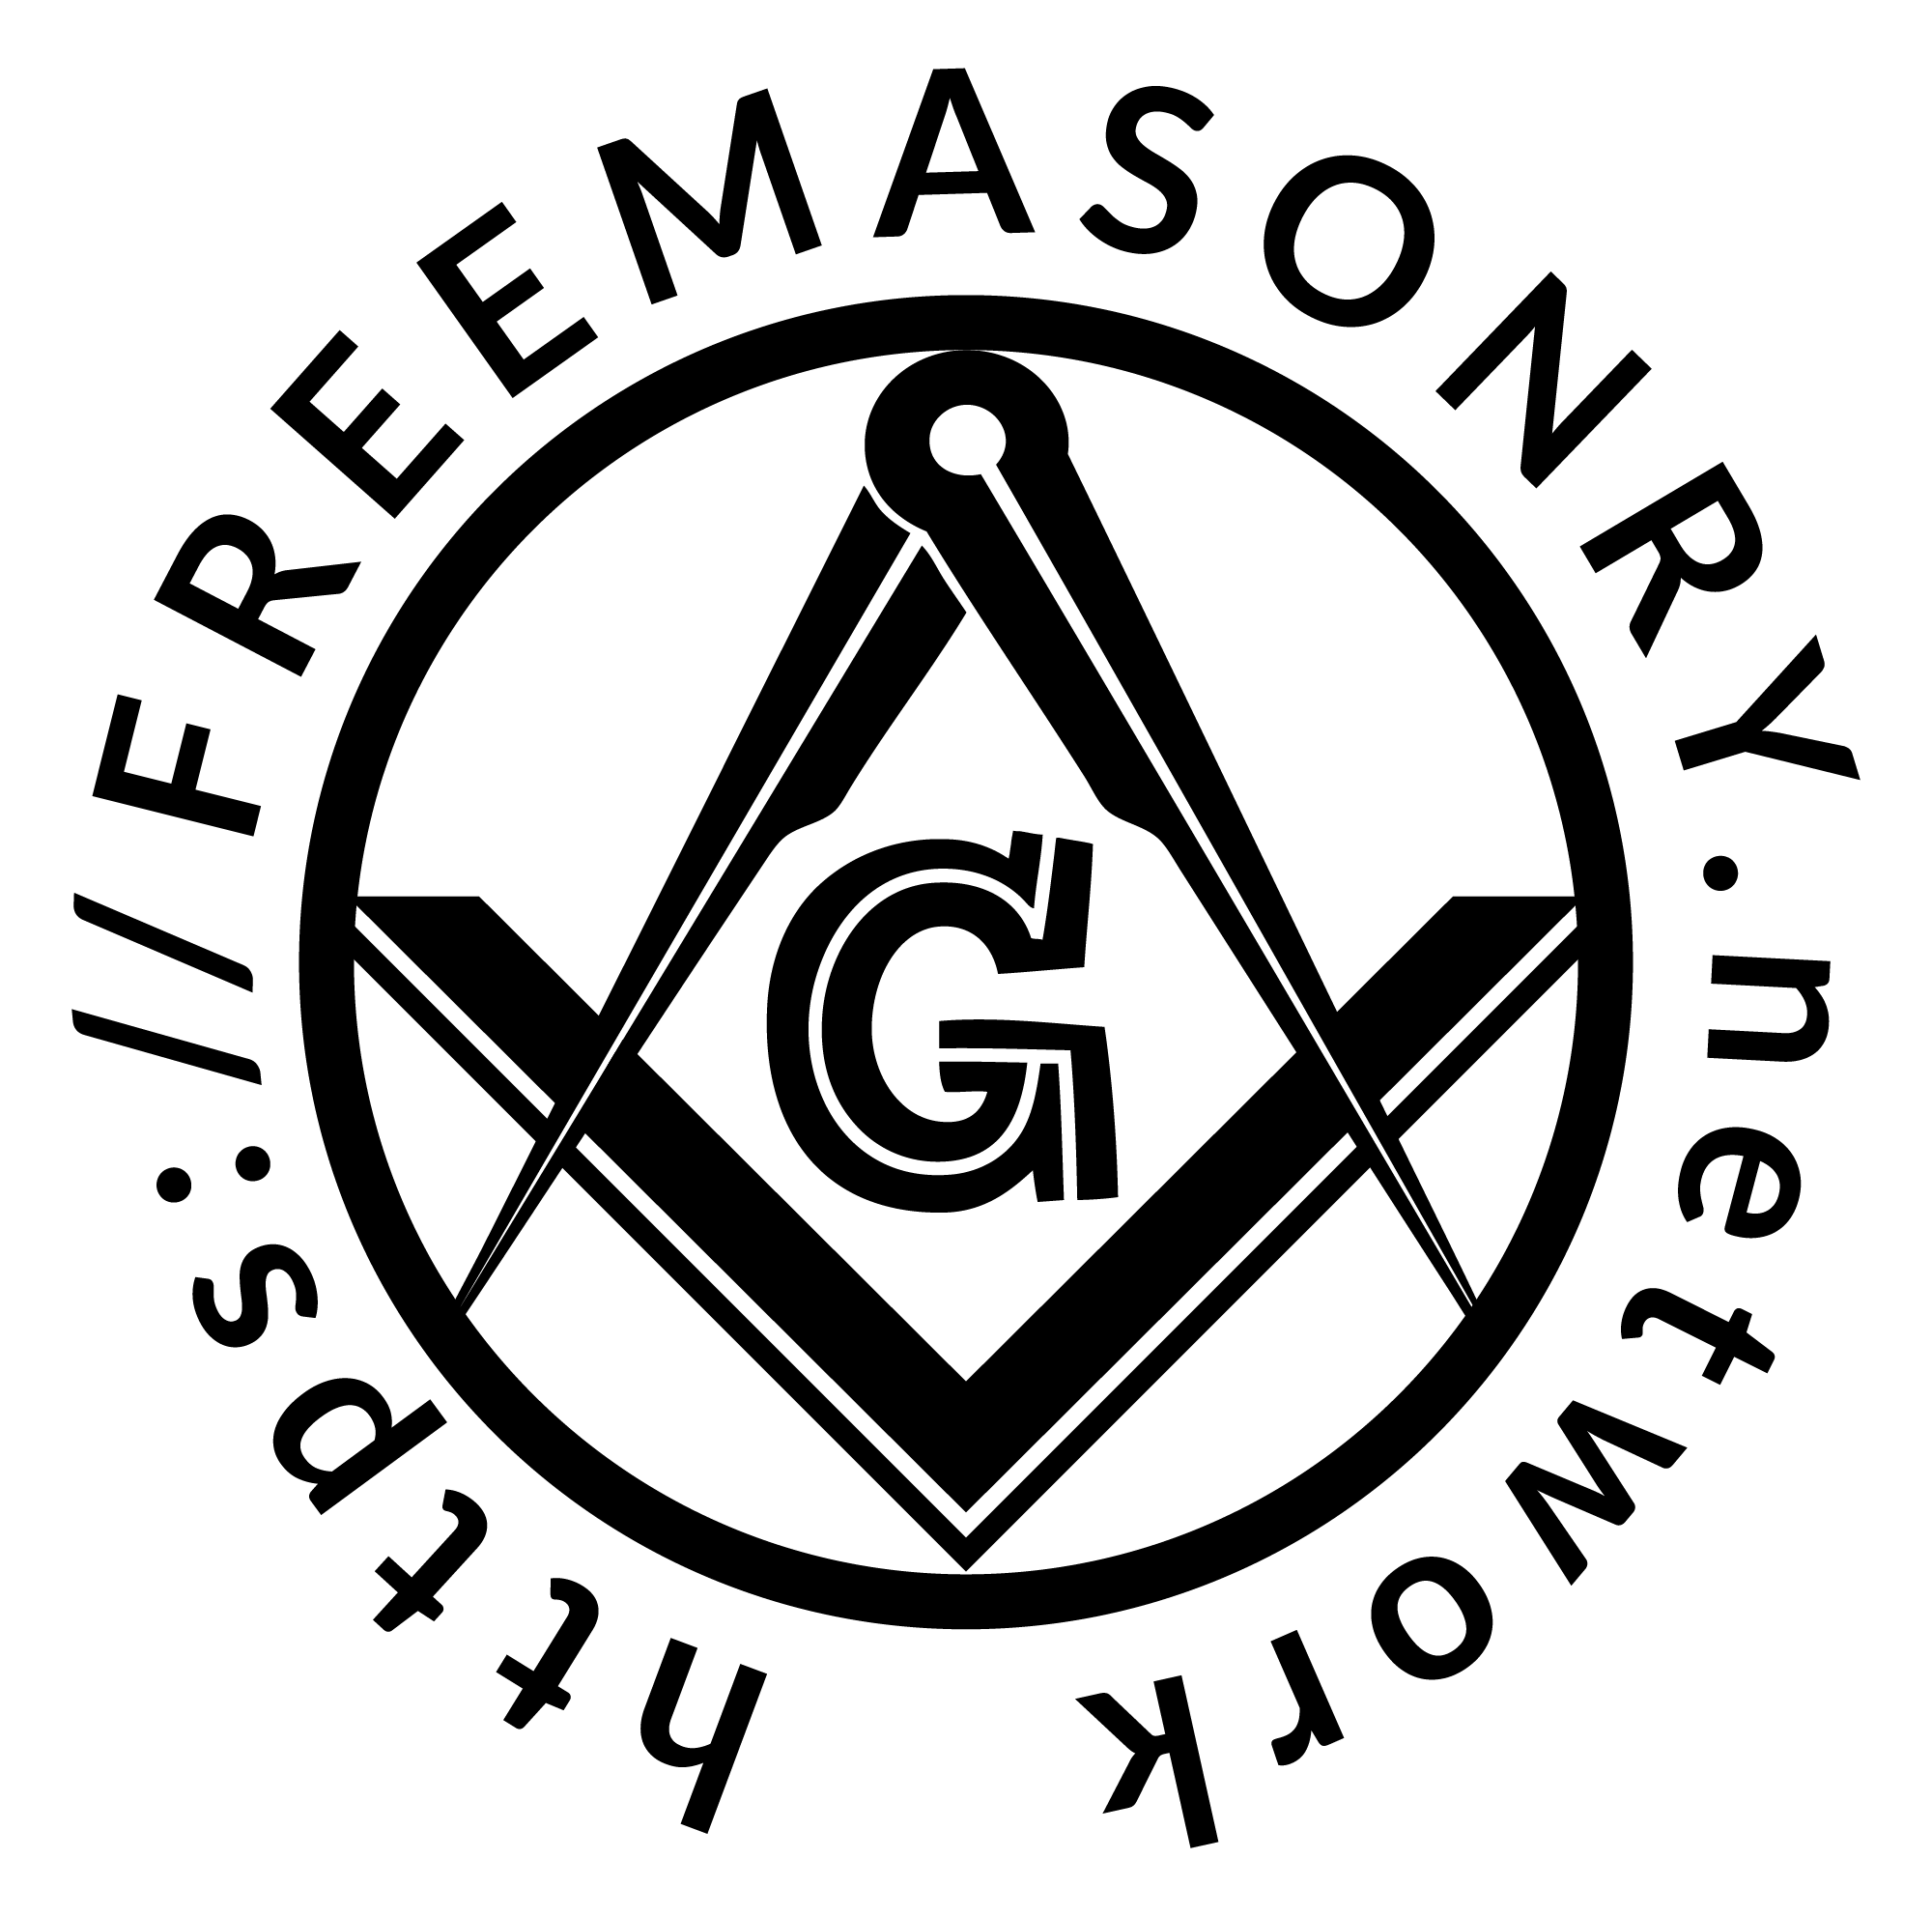 INTELECTUAL PROPERTY IN FREEMASONRY